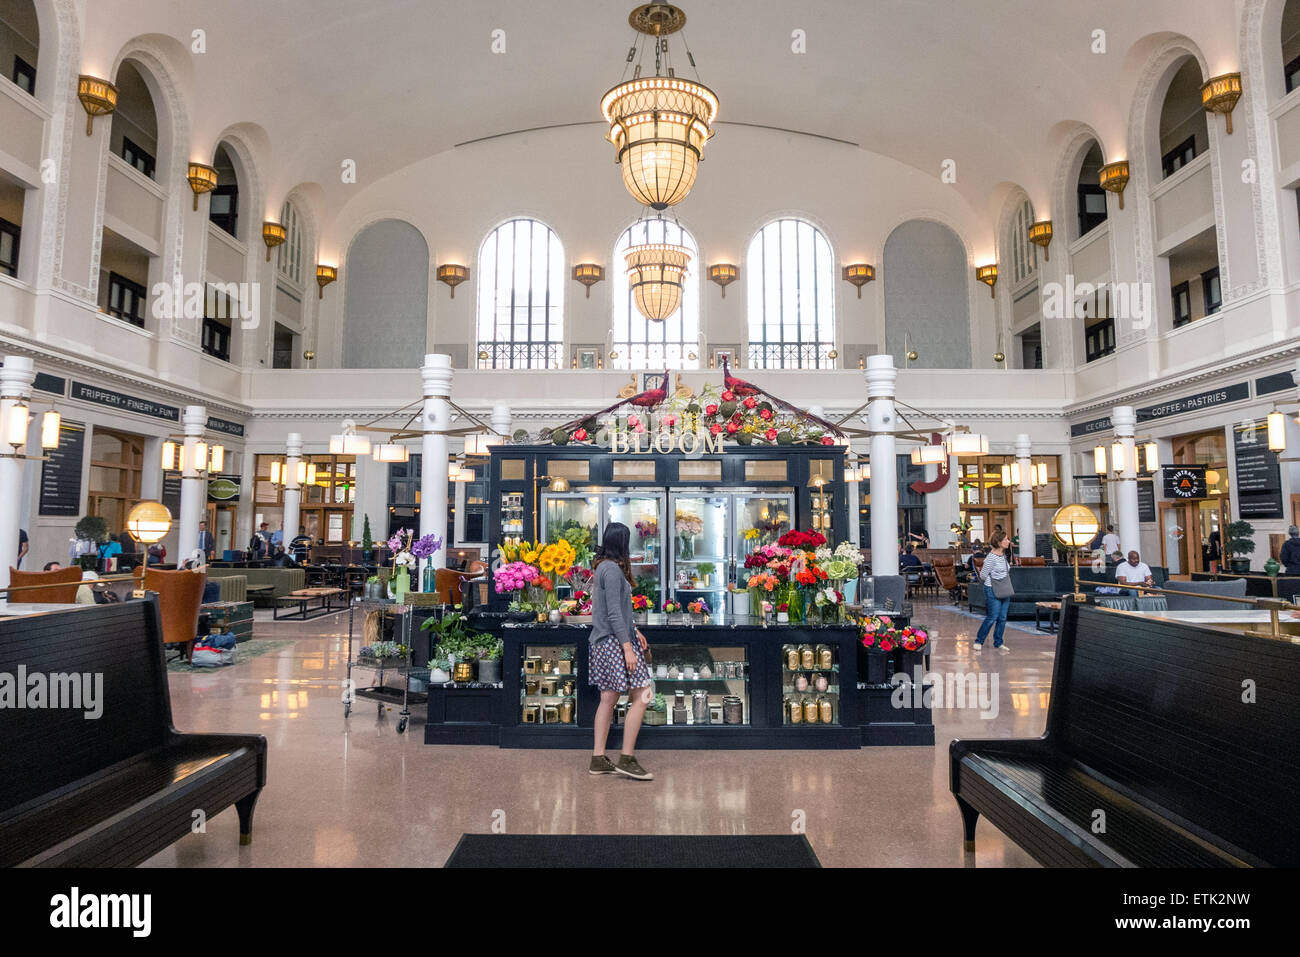 Inside the renovated Union Station in Denver Colorado - Stock Image